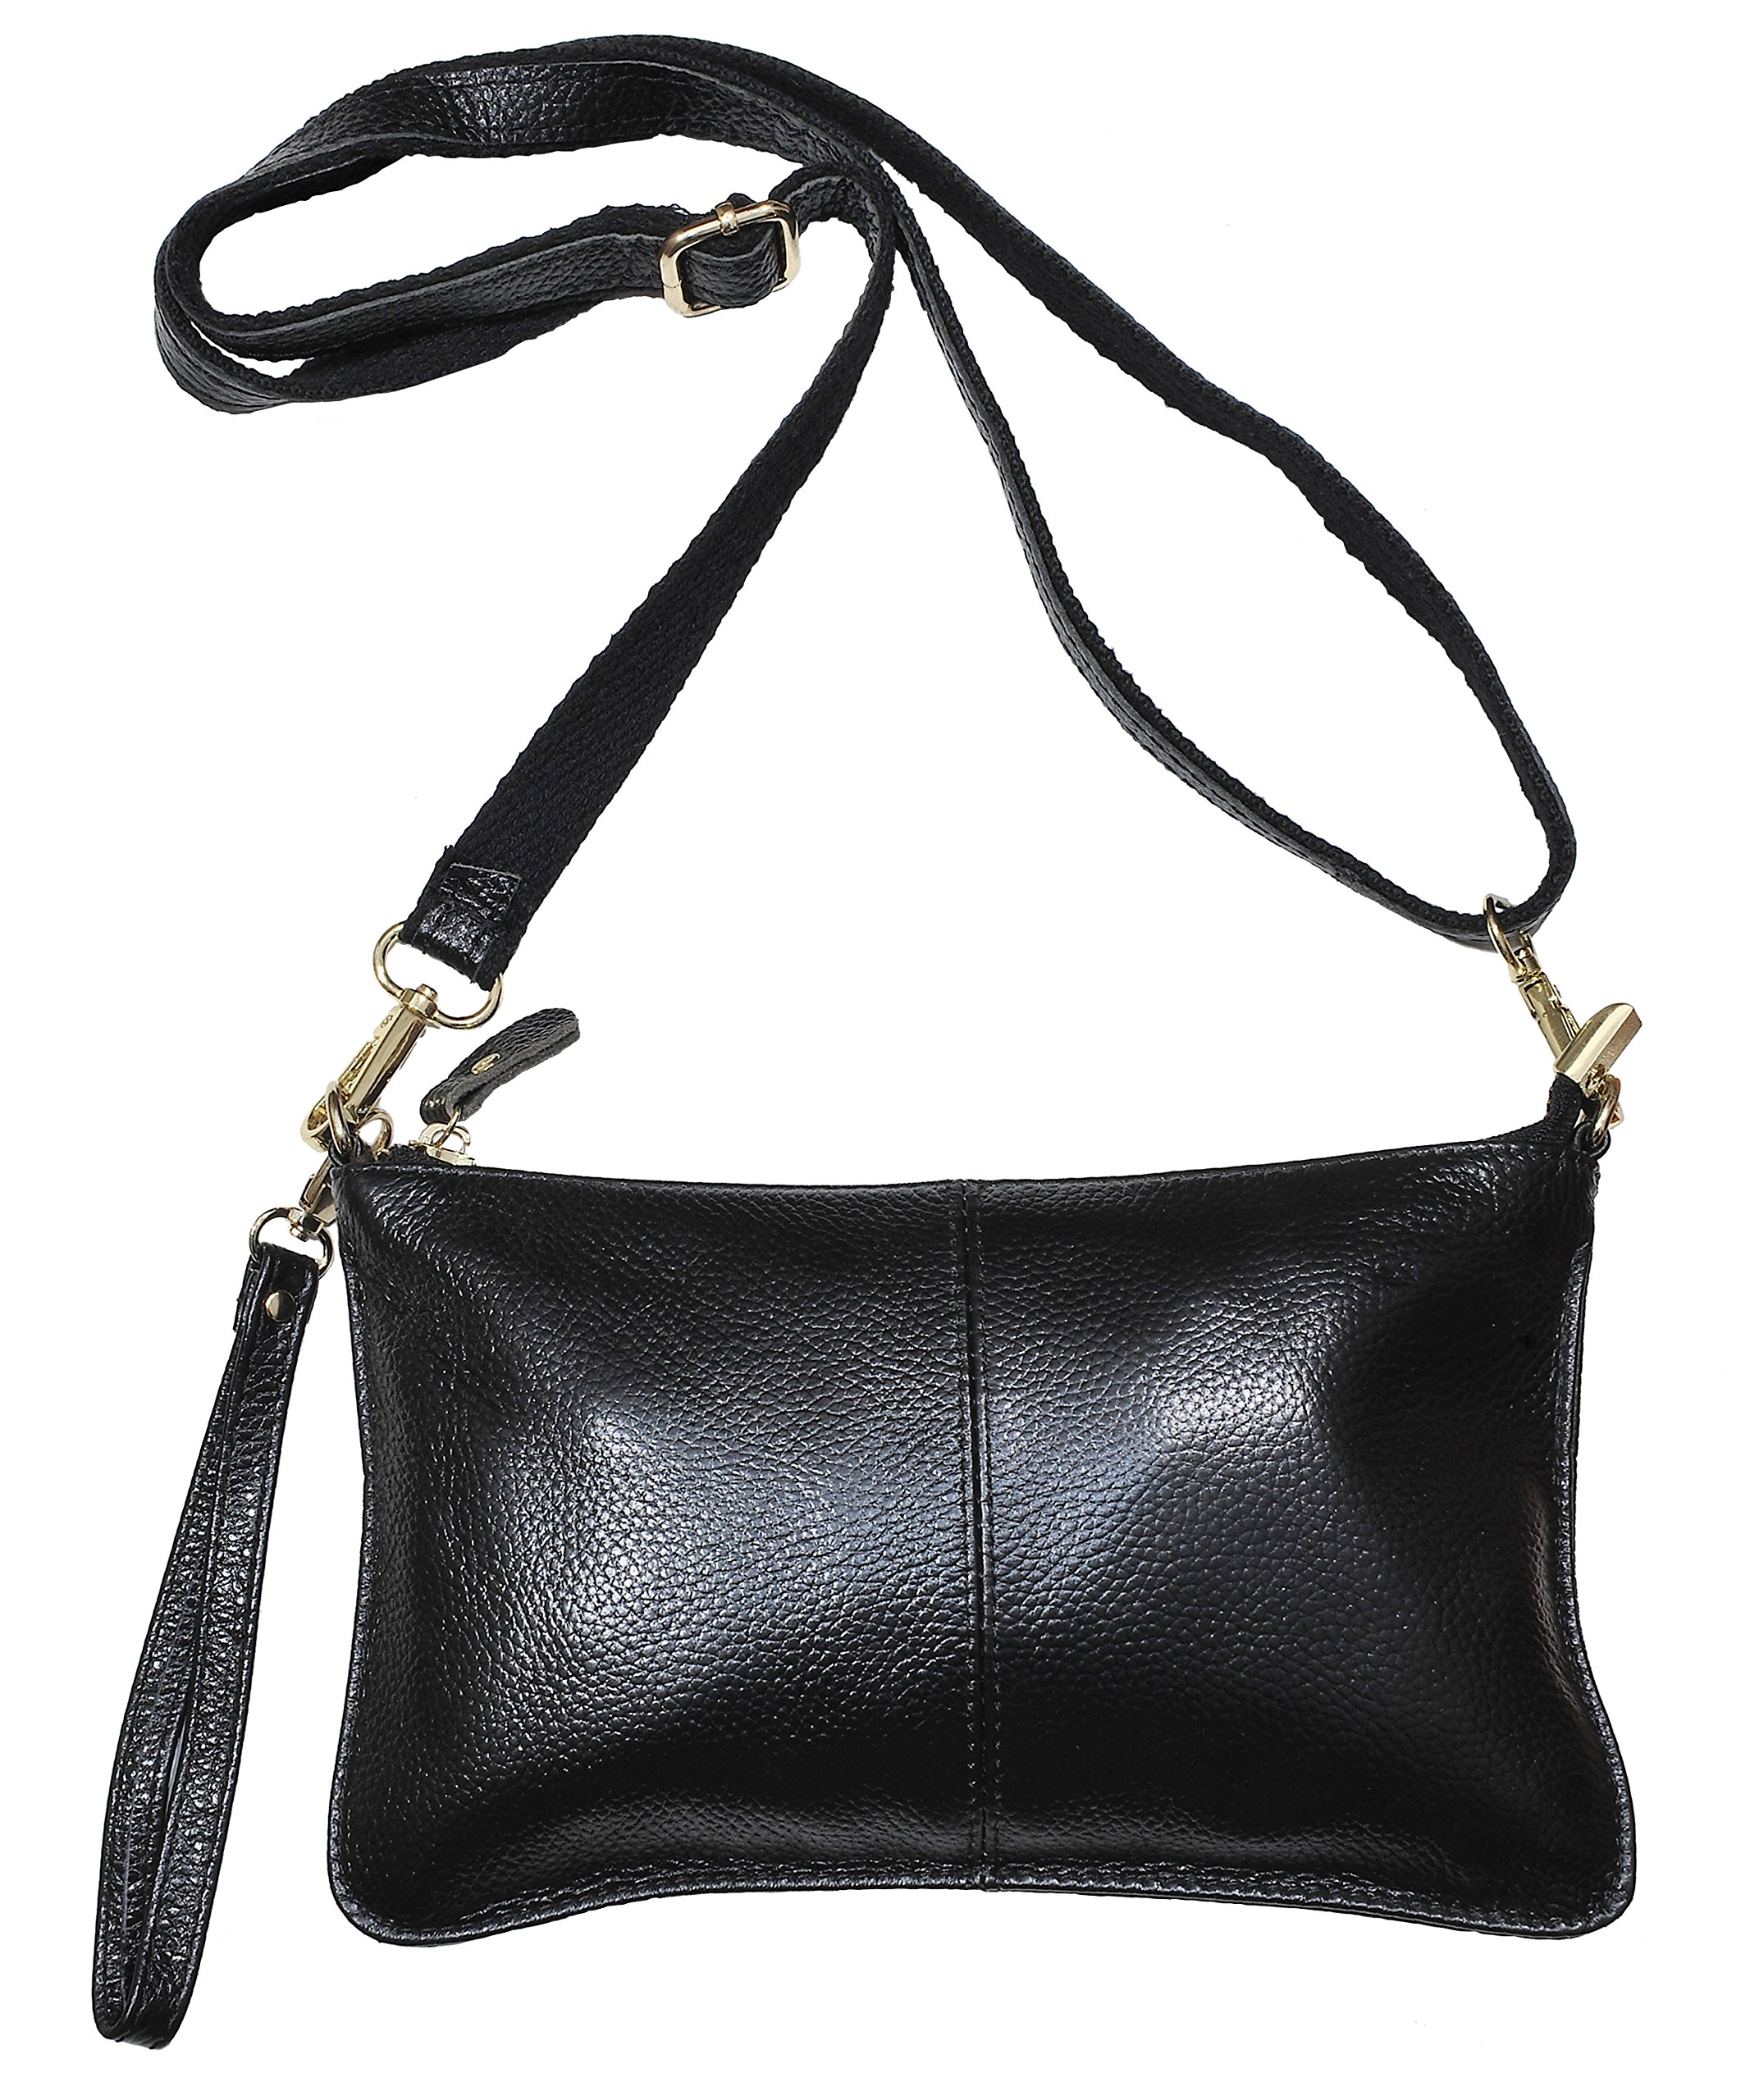 Beurlike Womens Leather Clutch Purse Wallet Small Crossbody Bag with Wristlet (Black)